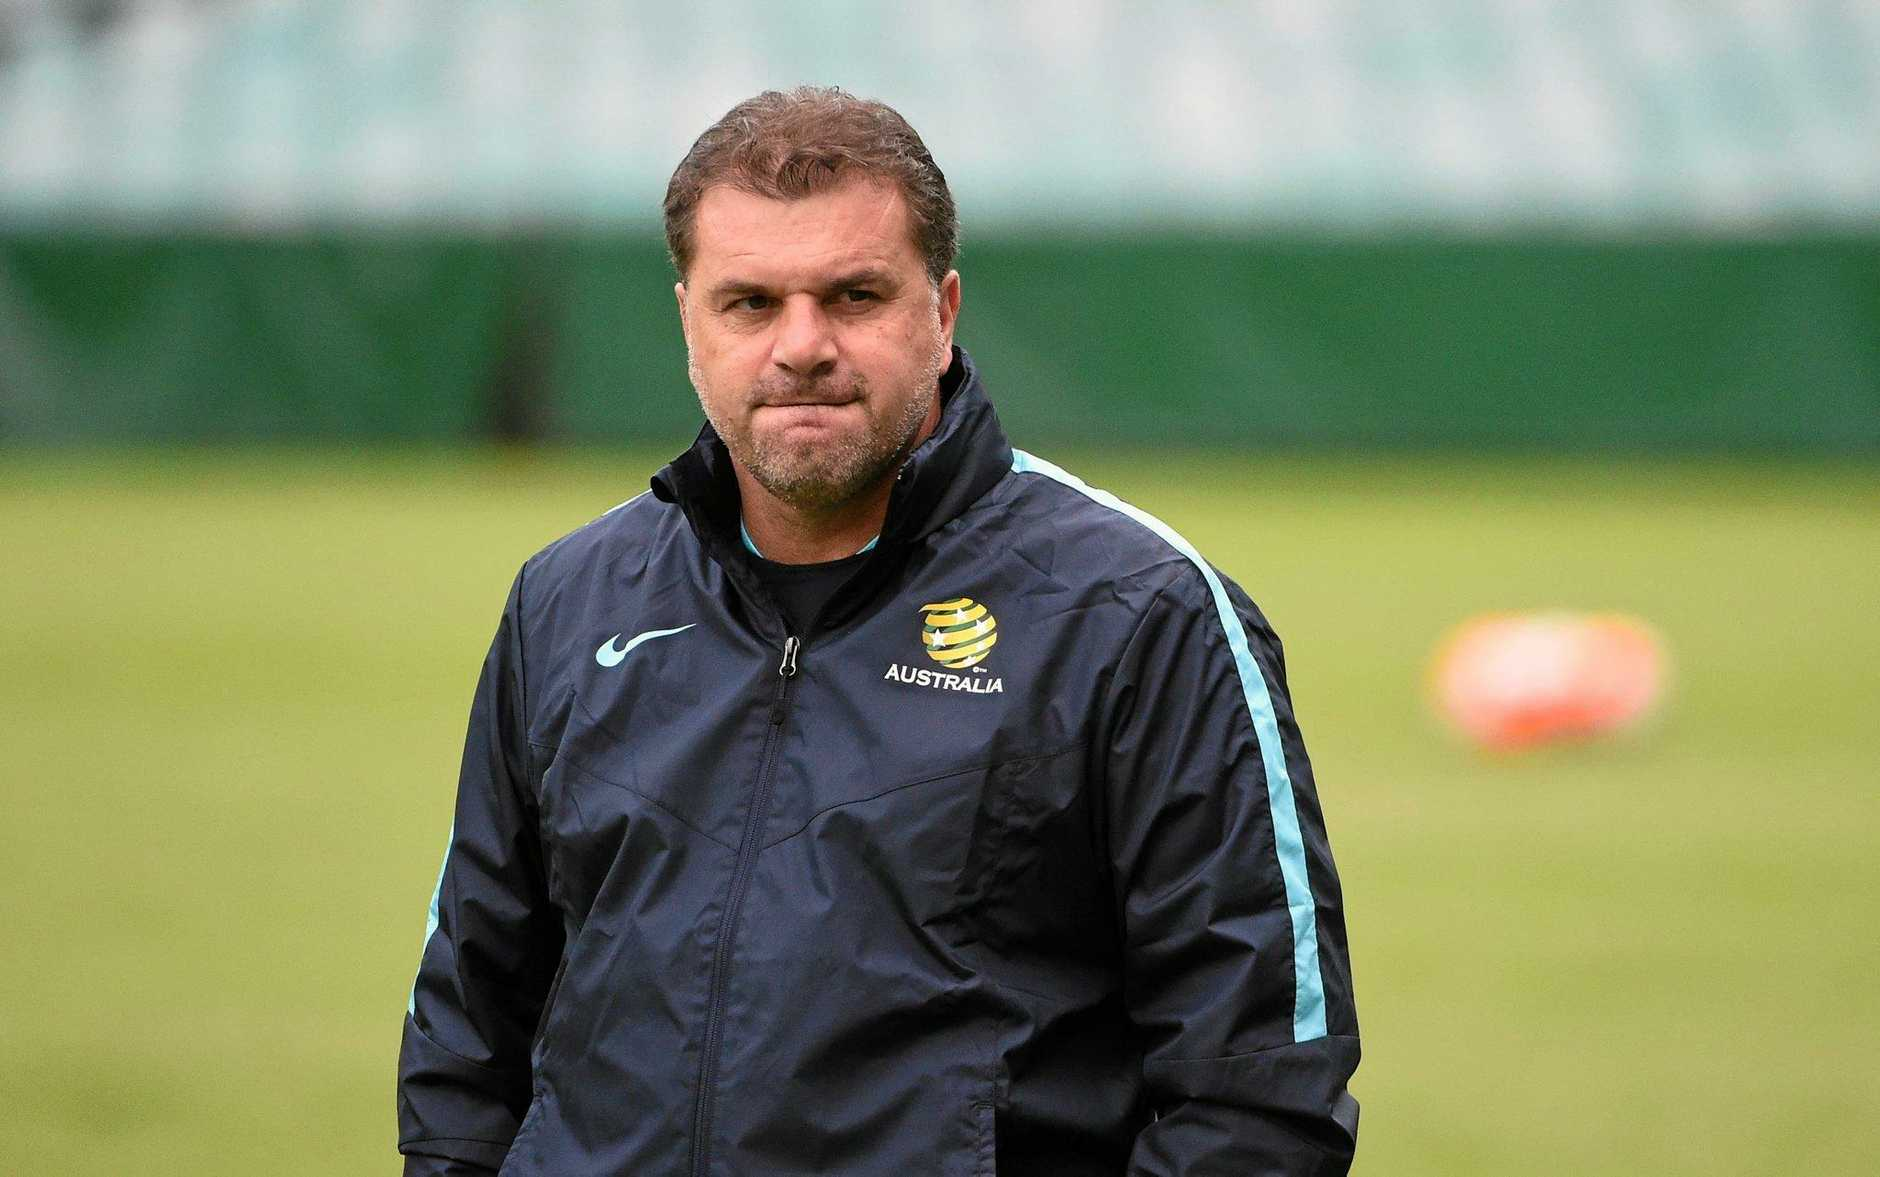 Socceroos coach Ange Postecoglou is excited at the prospect of blooding new players.